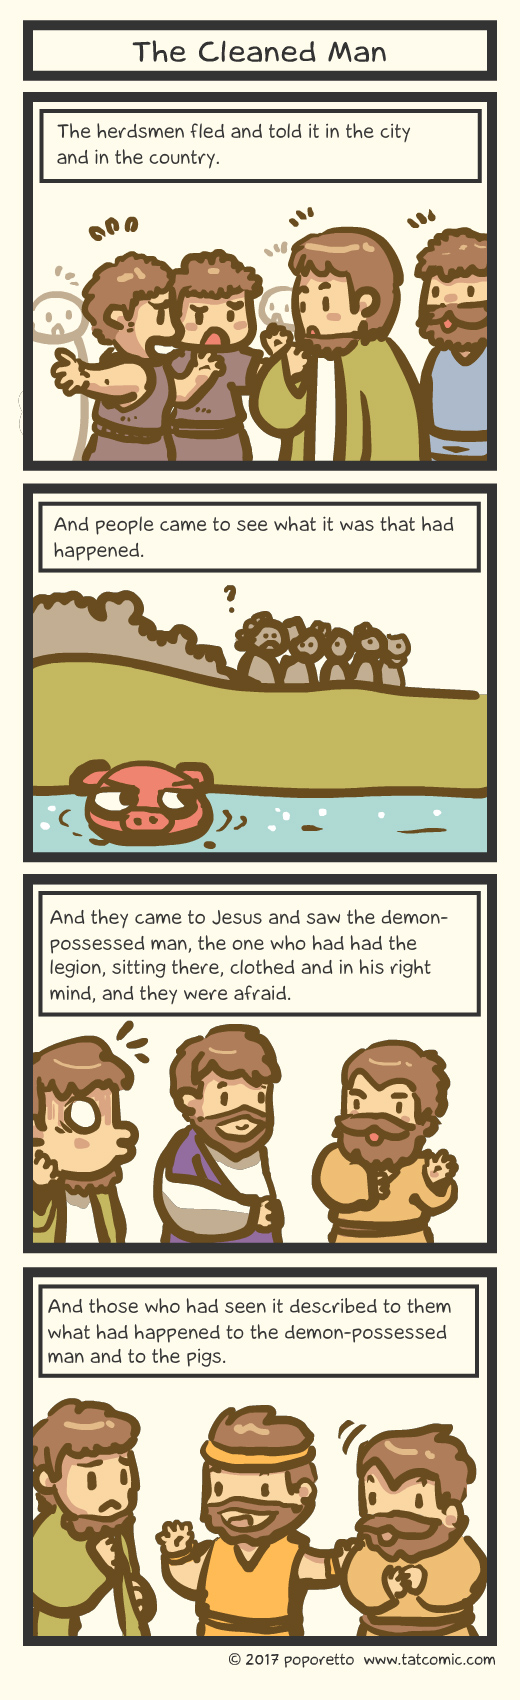 Gospel Christian comic strip jesus and his disciples went out to the sea and the storm caught up to them, jesus and the man who has been cleansed from the demon legion